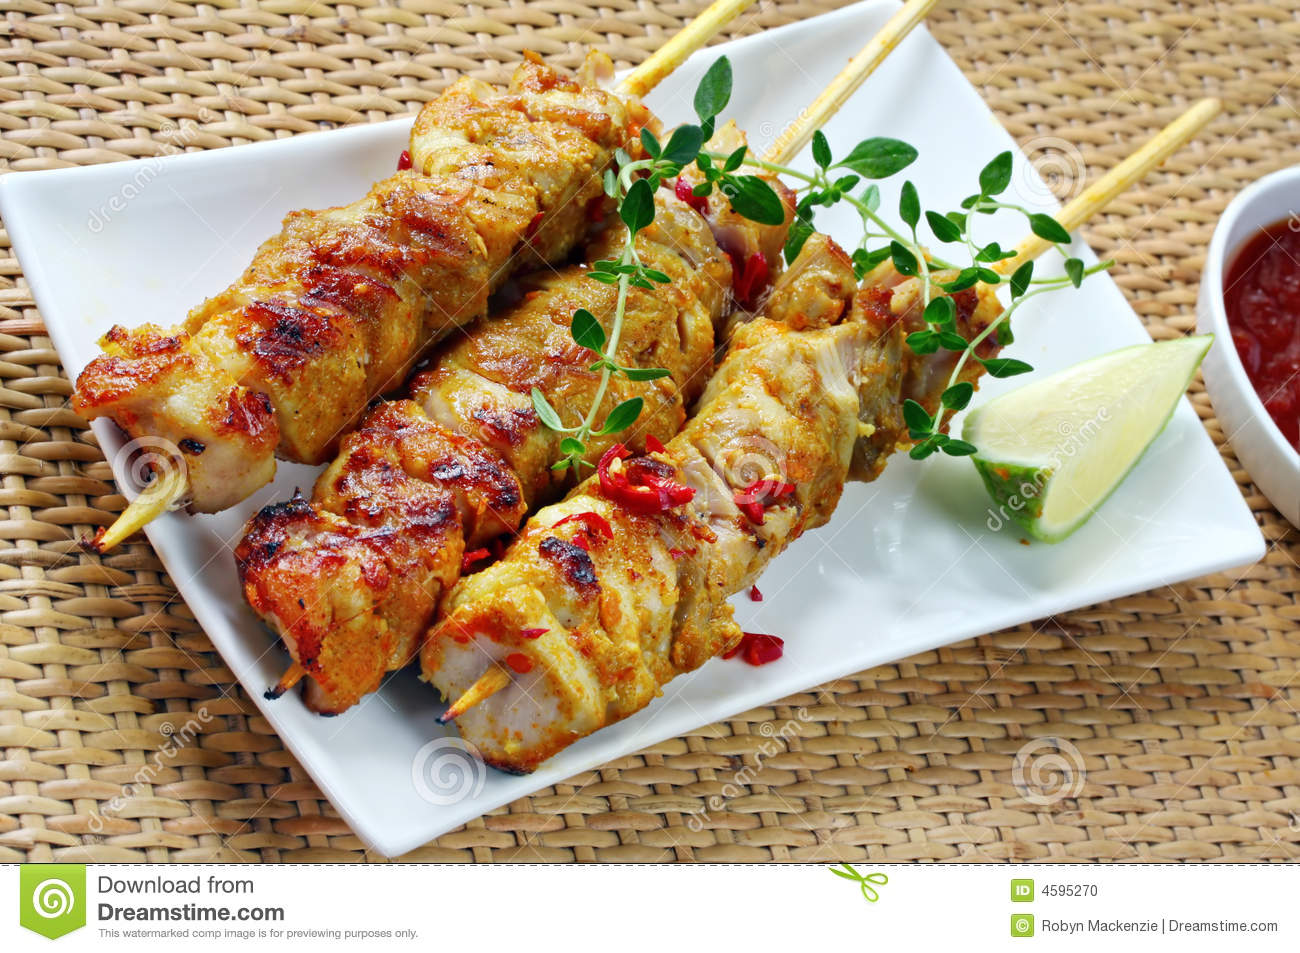 Chicken Skewers with Chili and Lime